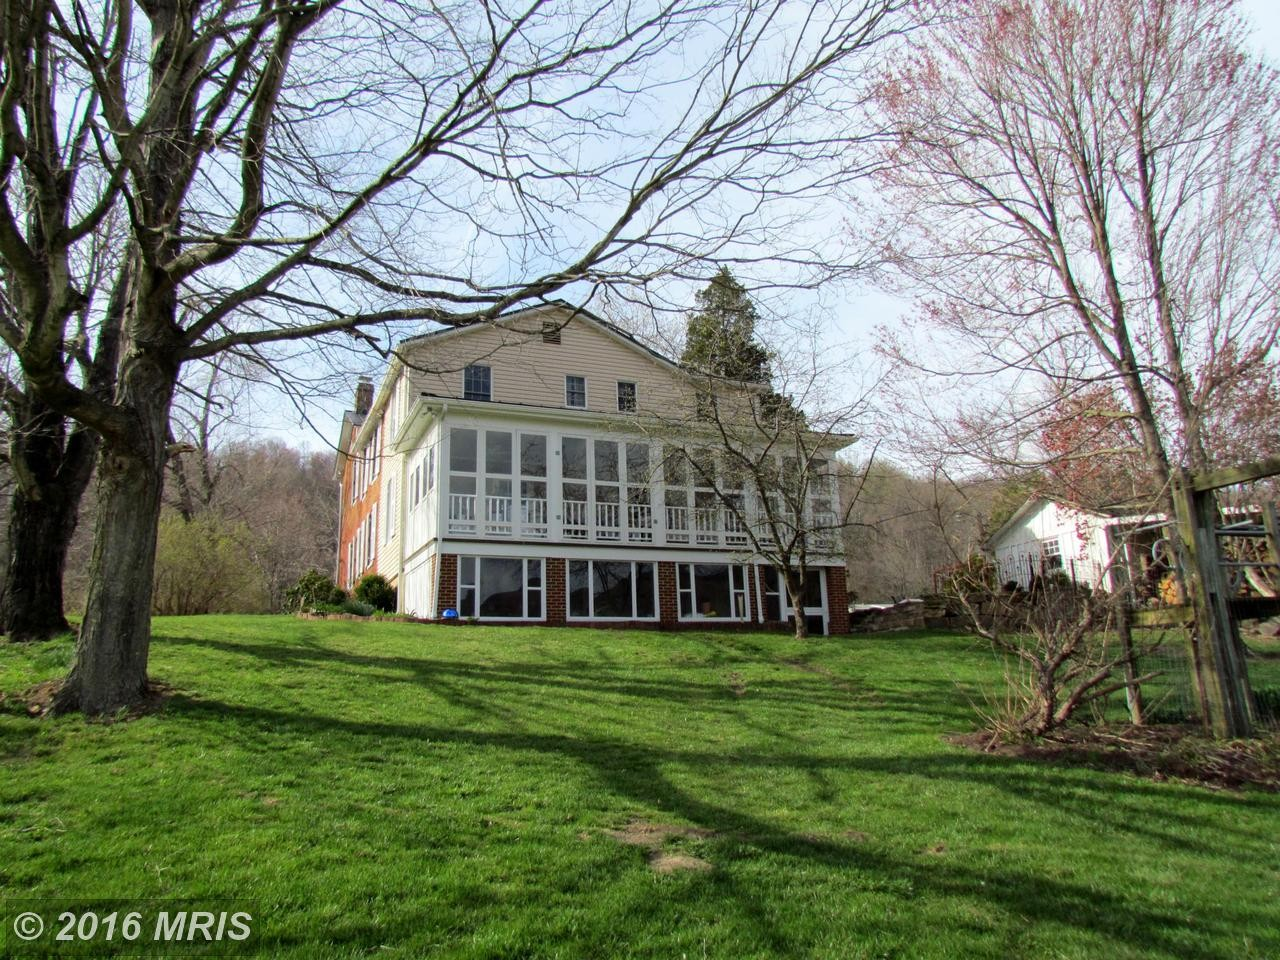 historic farmhouse a luxury single family home for sale in cumberland, maryland property id al9009629 christie s international real estate